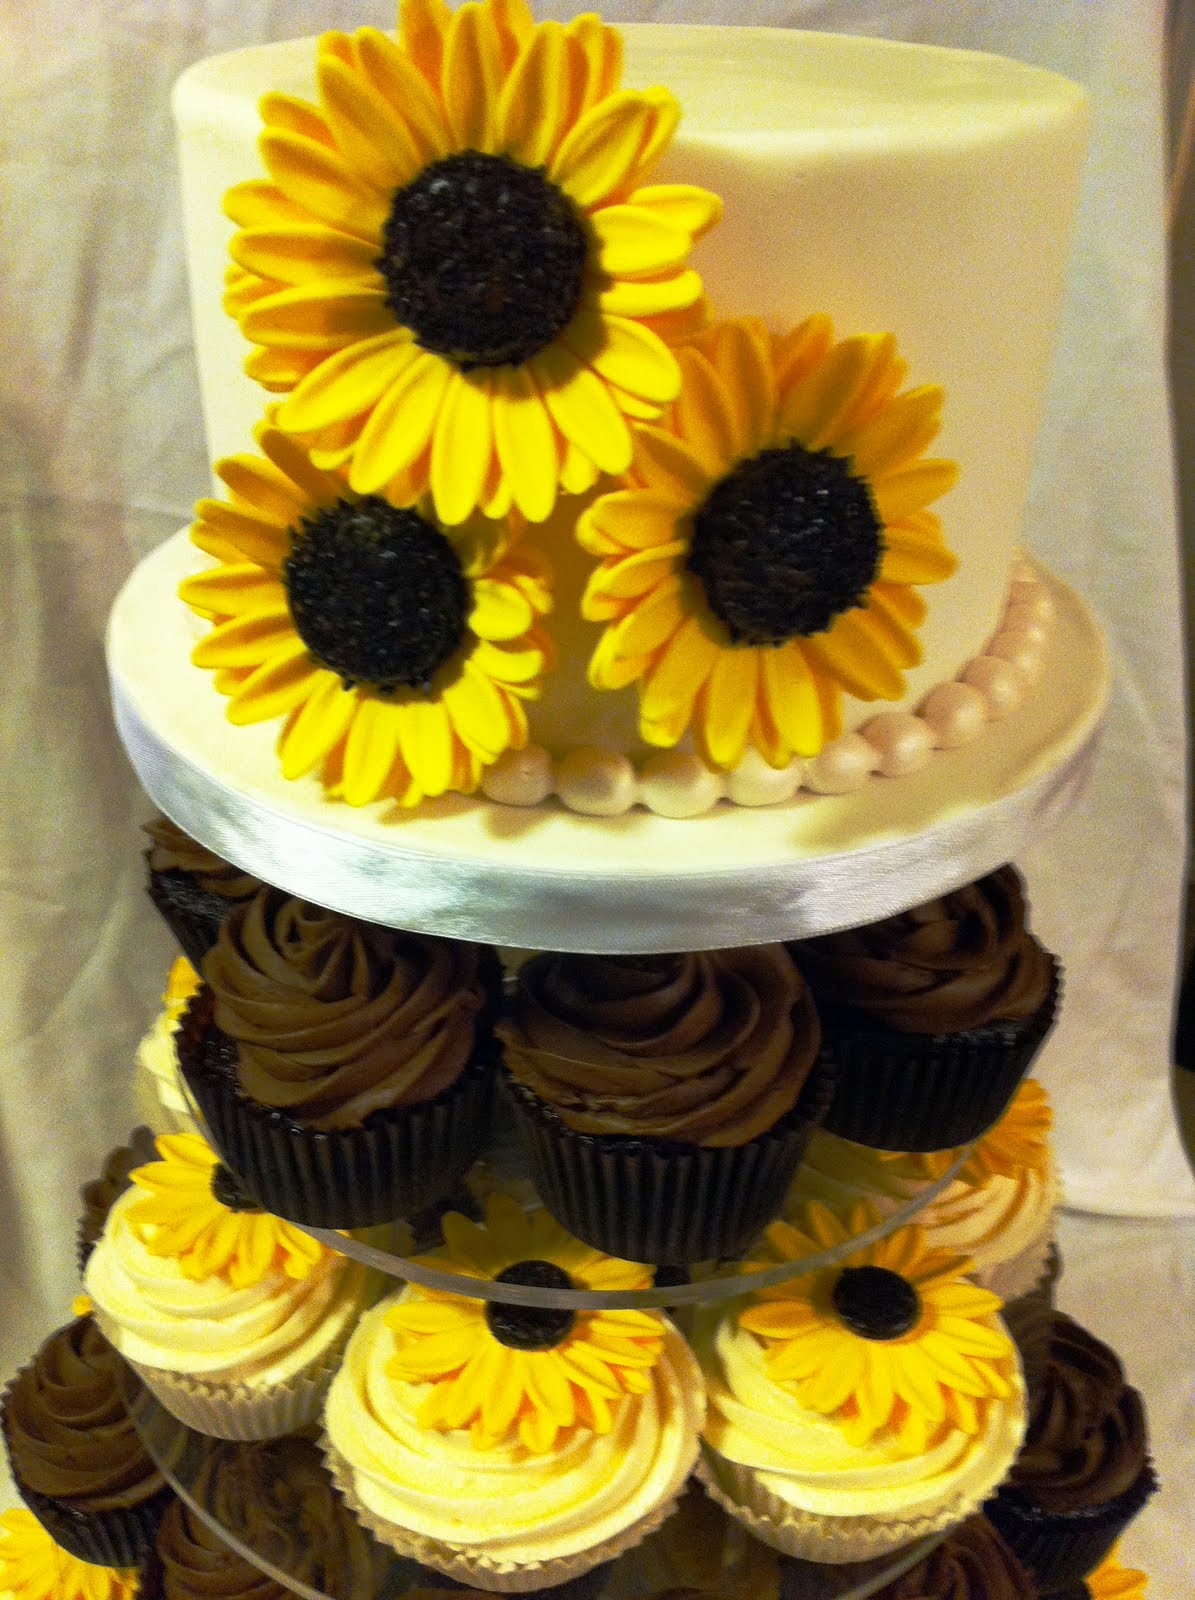 Easy Sunflower Cupcakes